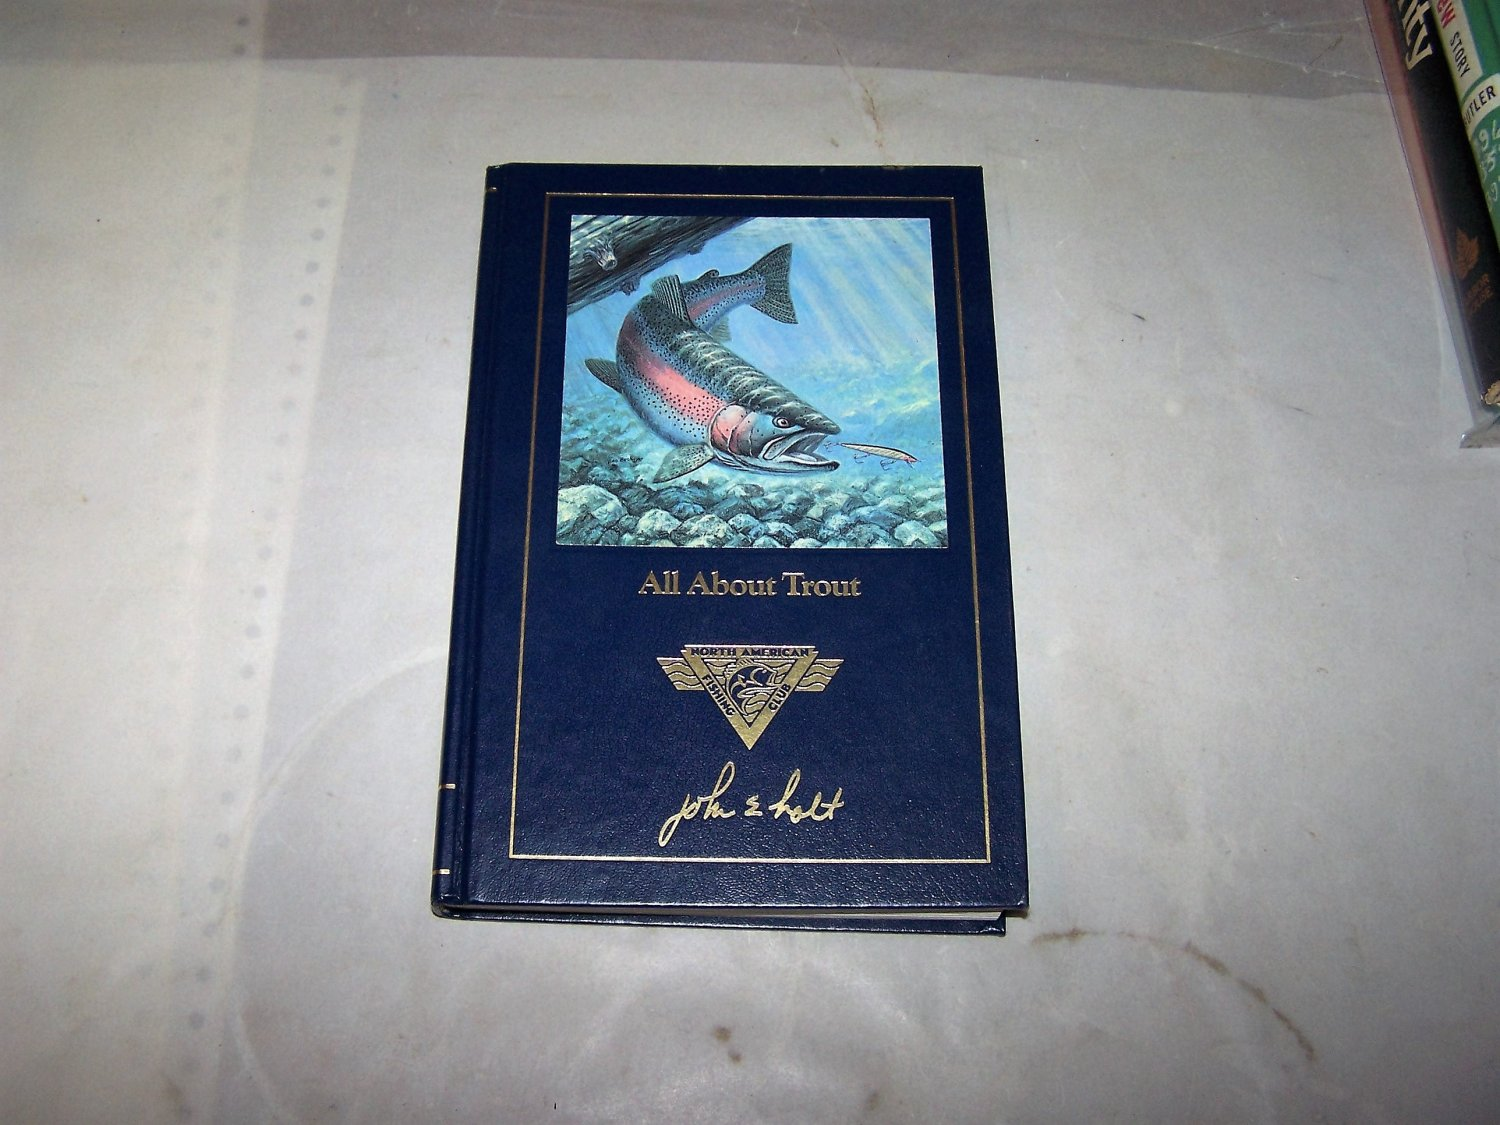 All about trout hc book john holt 1991 north american for North american fishing club